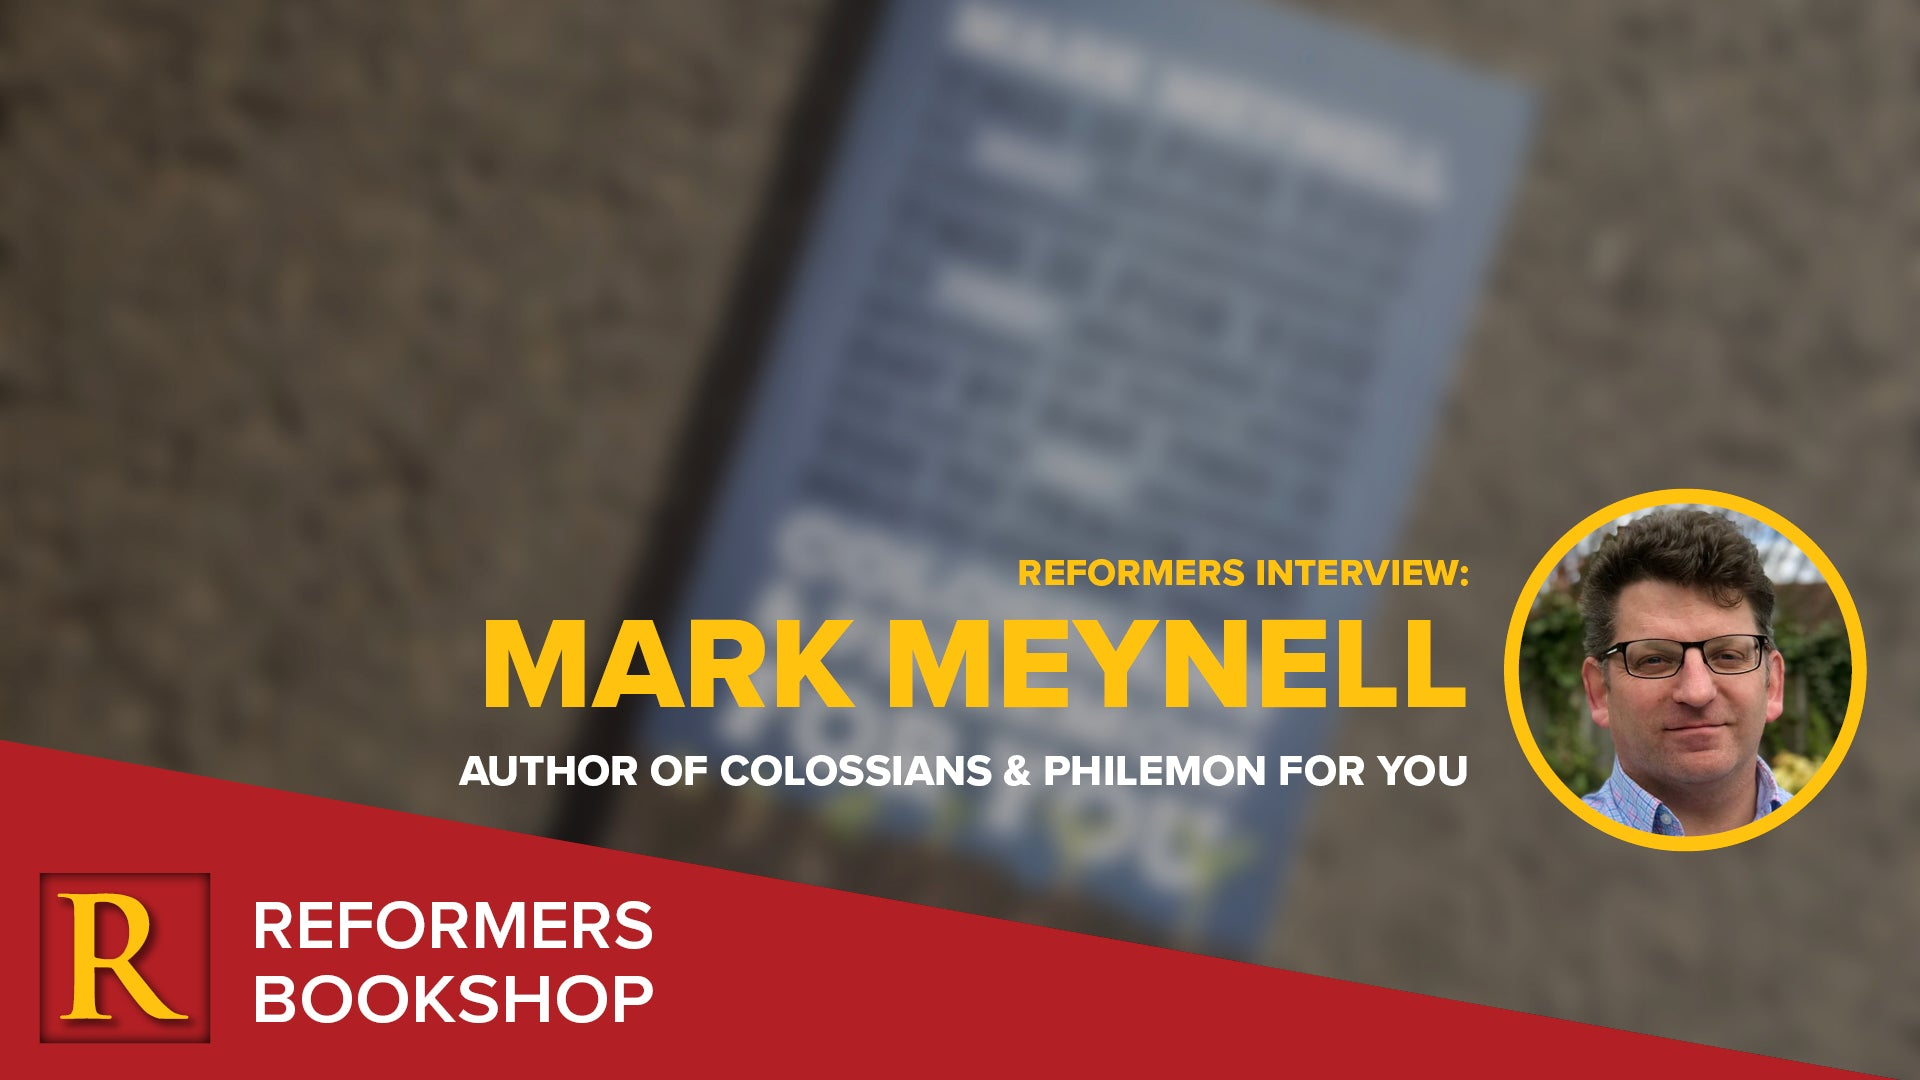 Reformers Interview: Mark Meynell -- Author of Colossians & Philemon for You